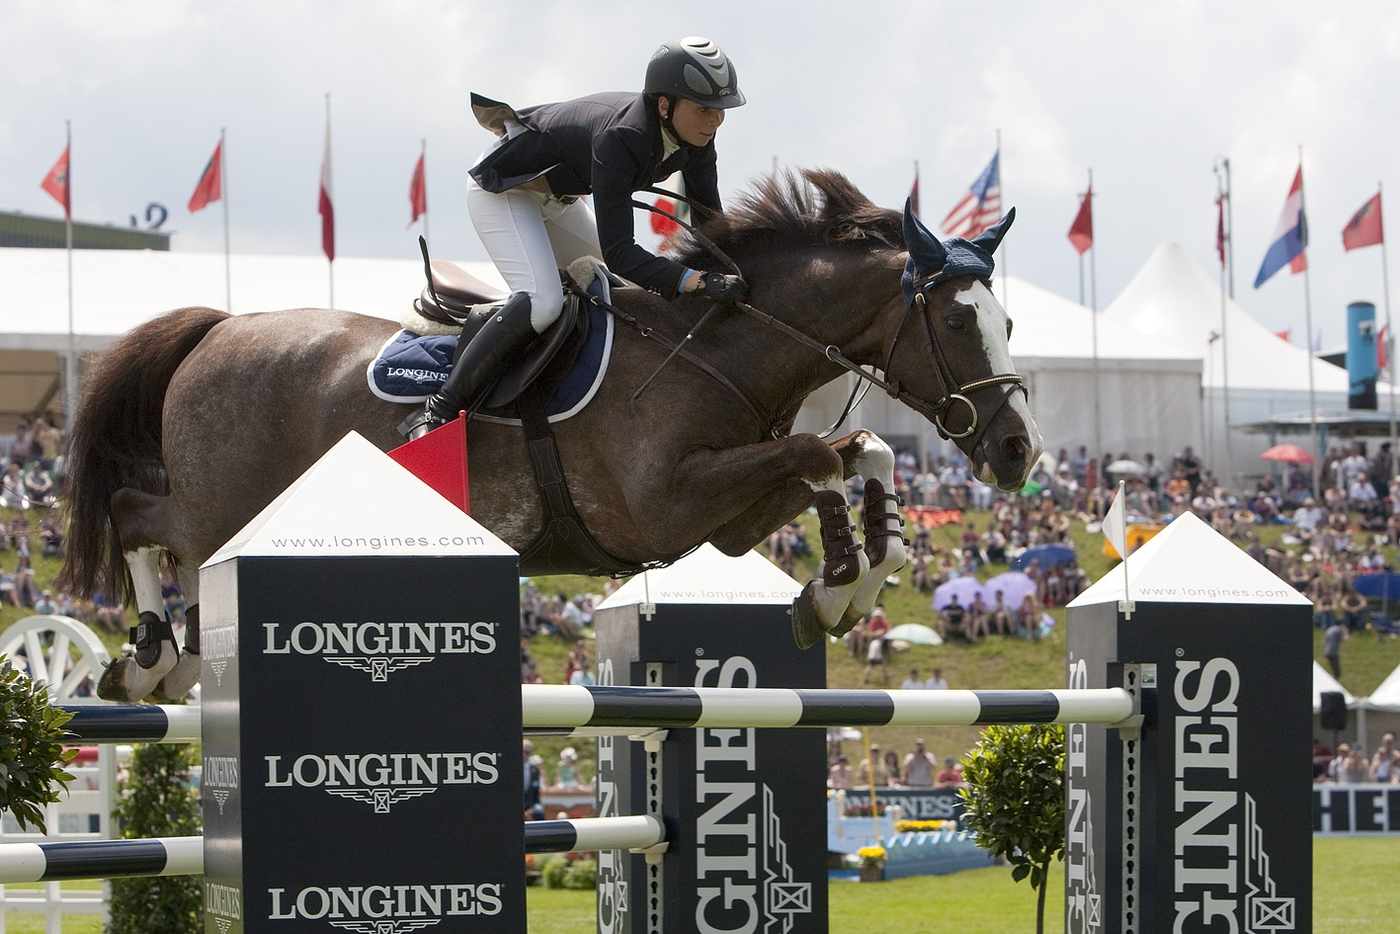 Longines Show Jumping Event: Hong Kong Masters Signs up Longines as Title Sponsor - a commitment of very long duration 1